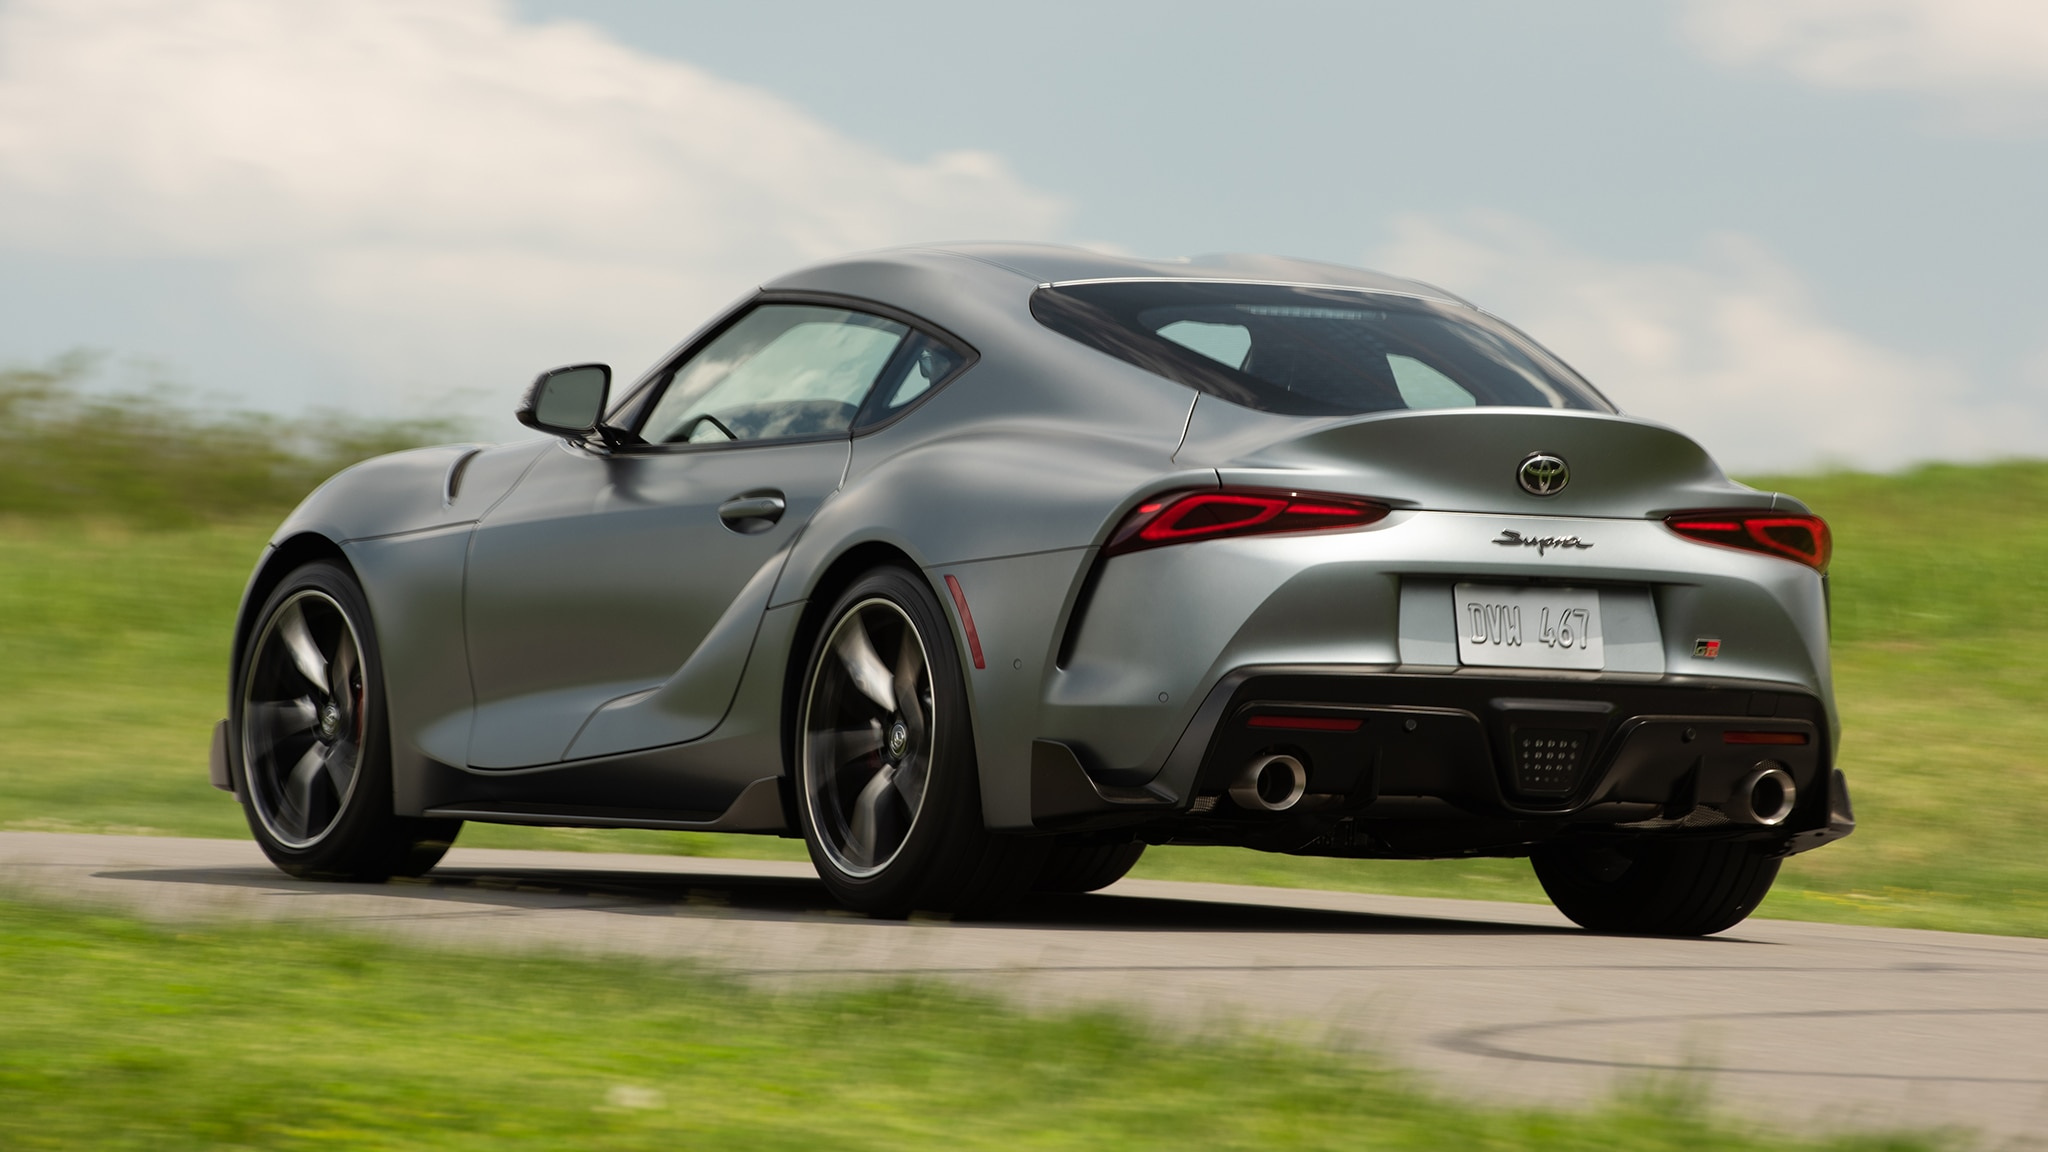 2020 Toyota Supra First Drive Review: It's as Real as It ...